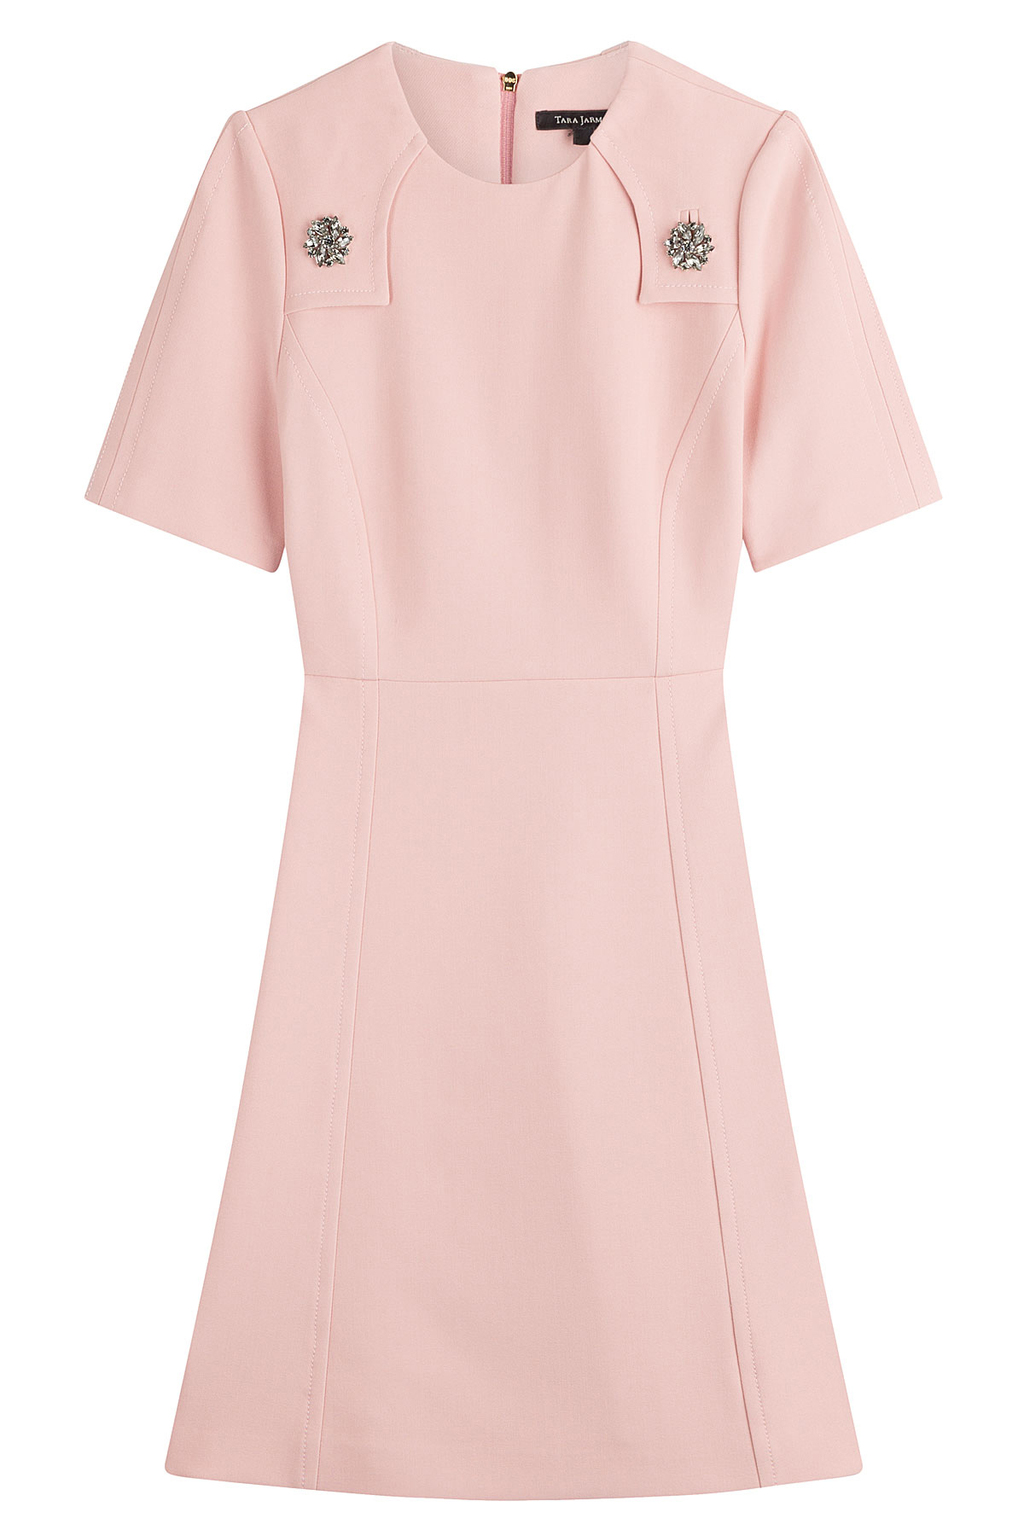 Dress With Embellishment - style: shift; pattern: plain; predominant colour: blush; occasions: evening; length: just above the knee; fit: body skimming; fibres: polyester/polyamide - stretch; neckline: crew; sleeve length: short sleeve; sleeve style: standard; pattern type: fabric; texture group: woven light midweight; season: a/w 2016; wardrobe: event